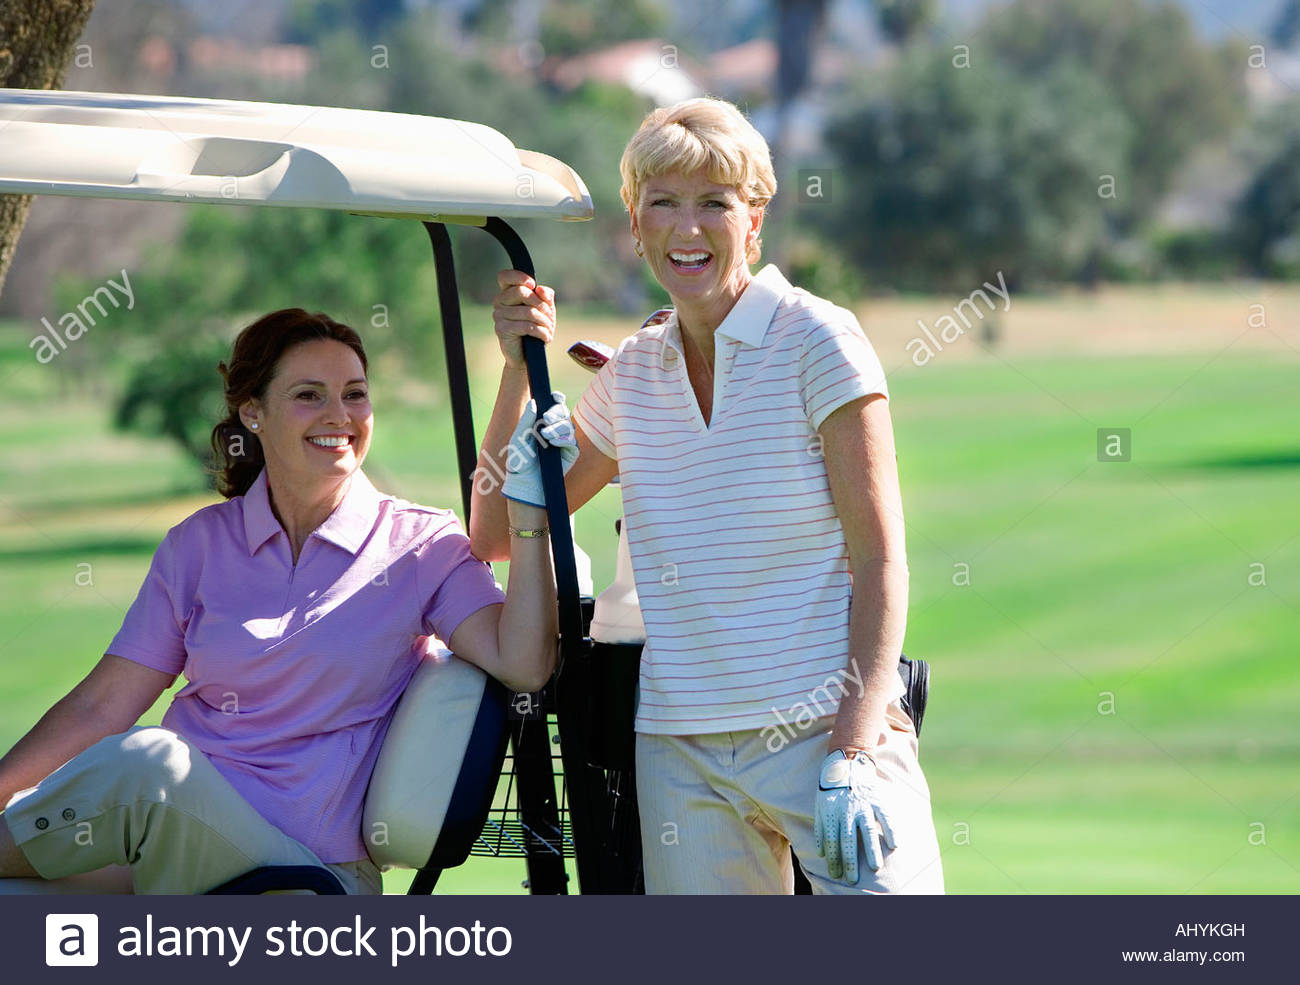 Two mature women posing on golf course, brunette sitting in golf buggy, blonde standing beside her, smiling, portrait - Stock Image